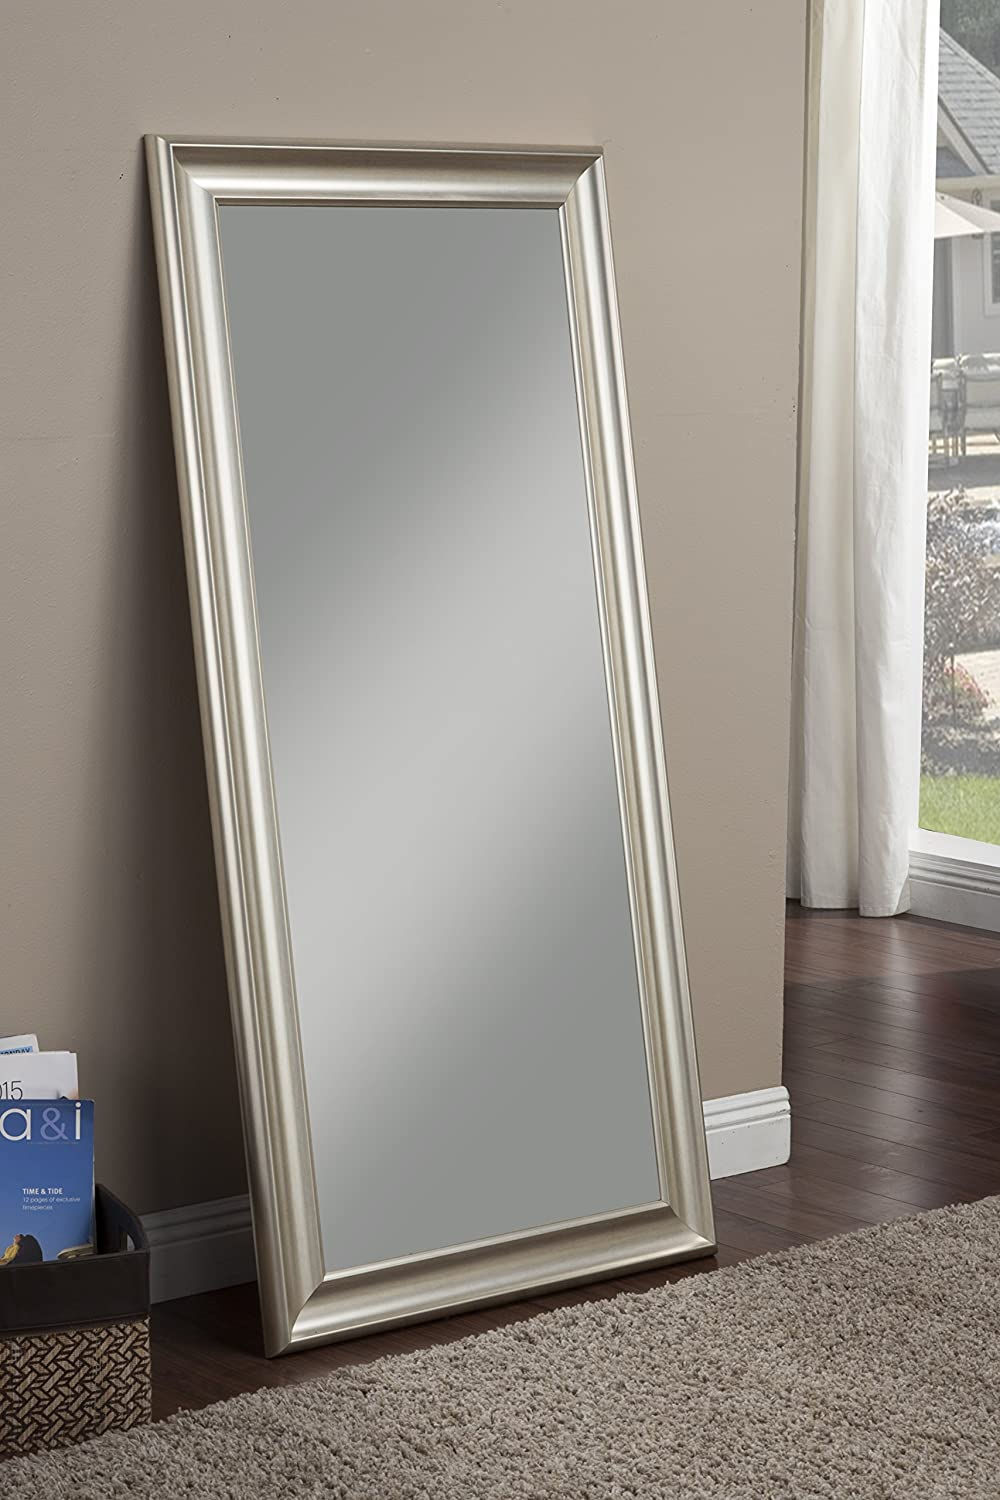 amazoncom sandberg furniture champagne silver full length leaner mirror home u0026 kitchen